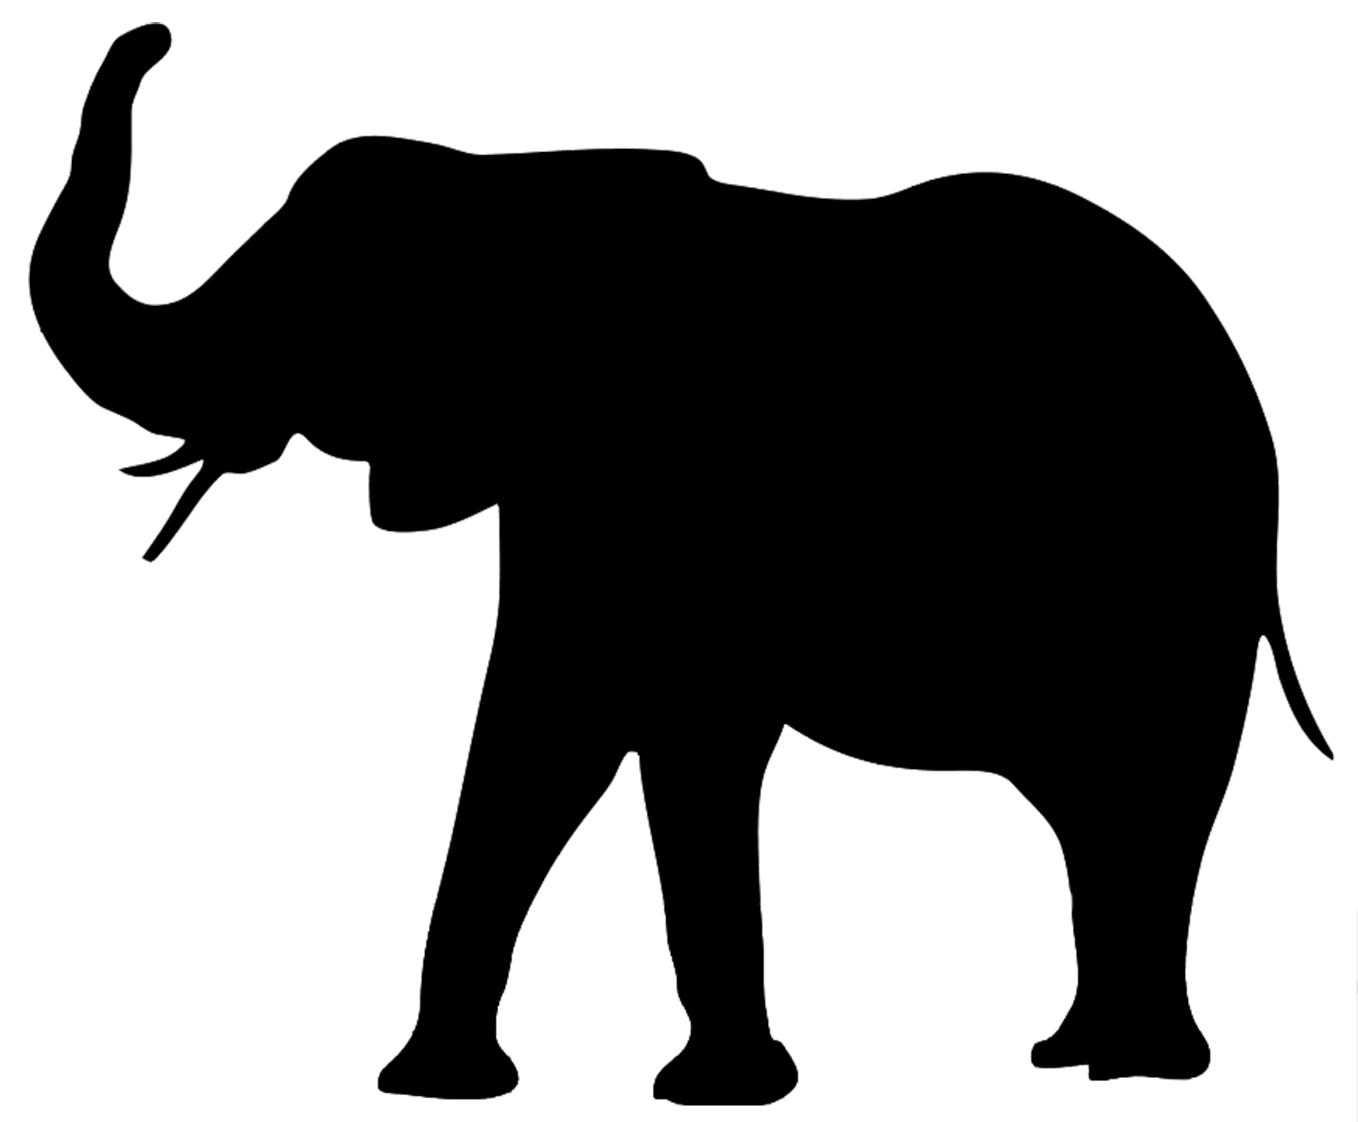 1358x1122 Shadows Clipart Elephant